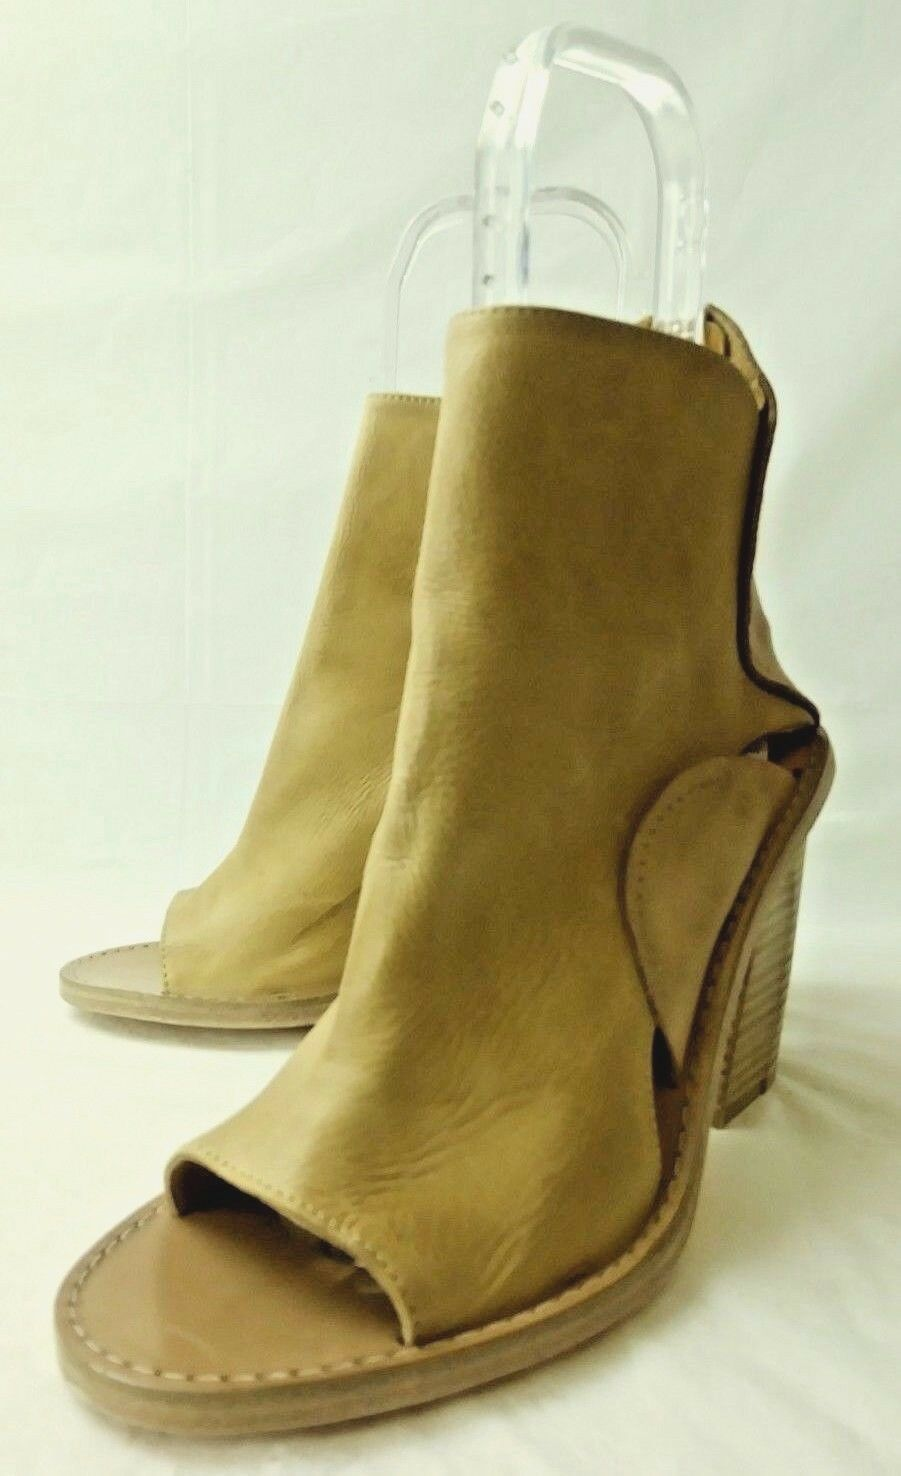 Free People Damenschuhe shoe EU 38 Open US 8 Beige Leder Open 38 Toe Wood block heel 3897 6611b4